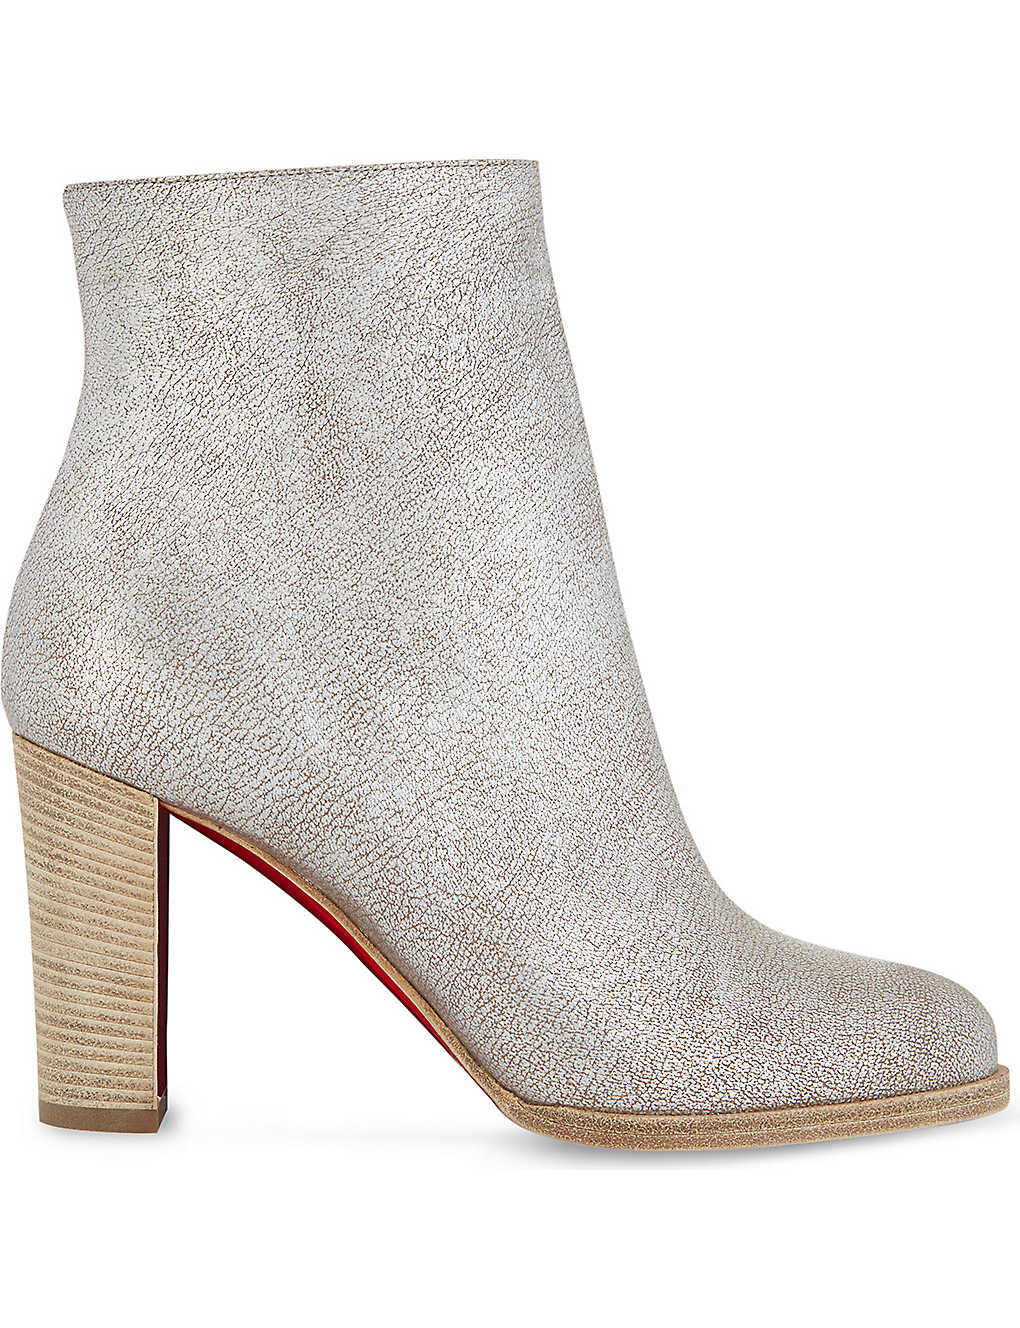 superior quality 2a694 f9a5a CHRISTIAN LOUBOUTIN - Adox 85 kid lame washed/cuoio heel ...